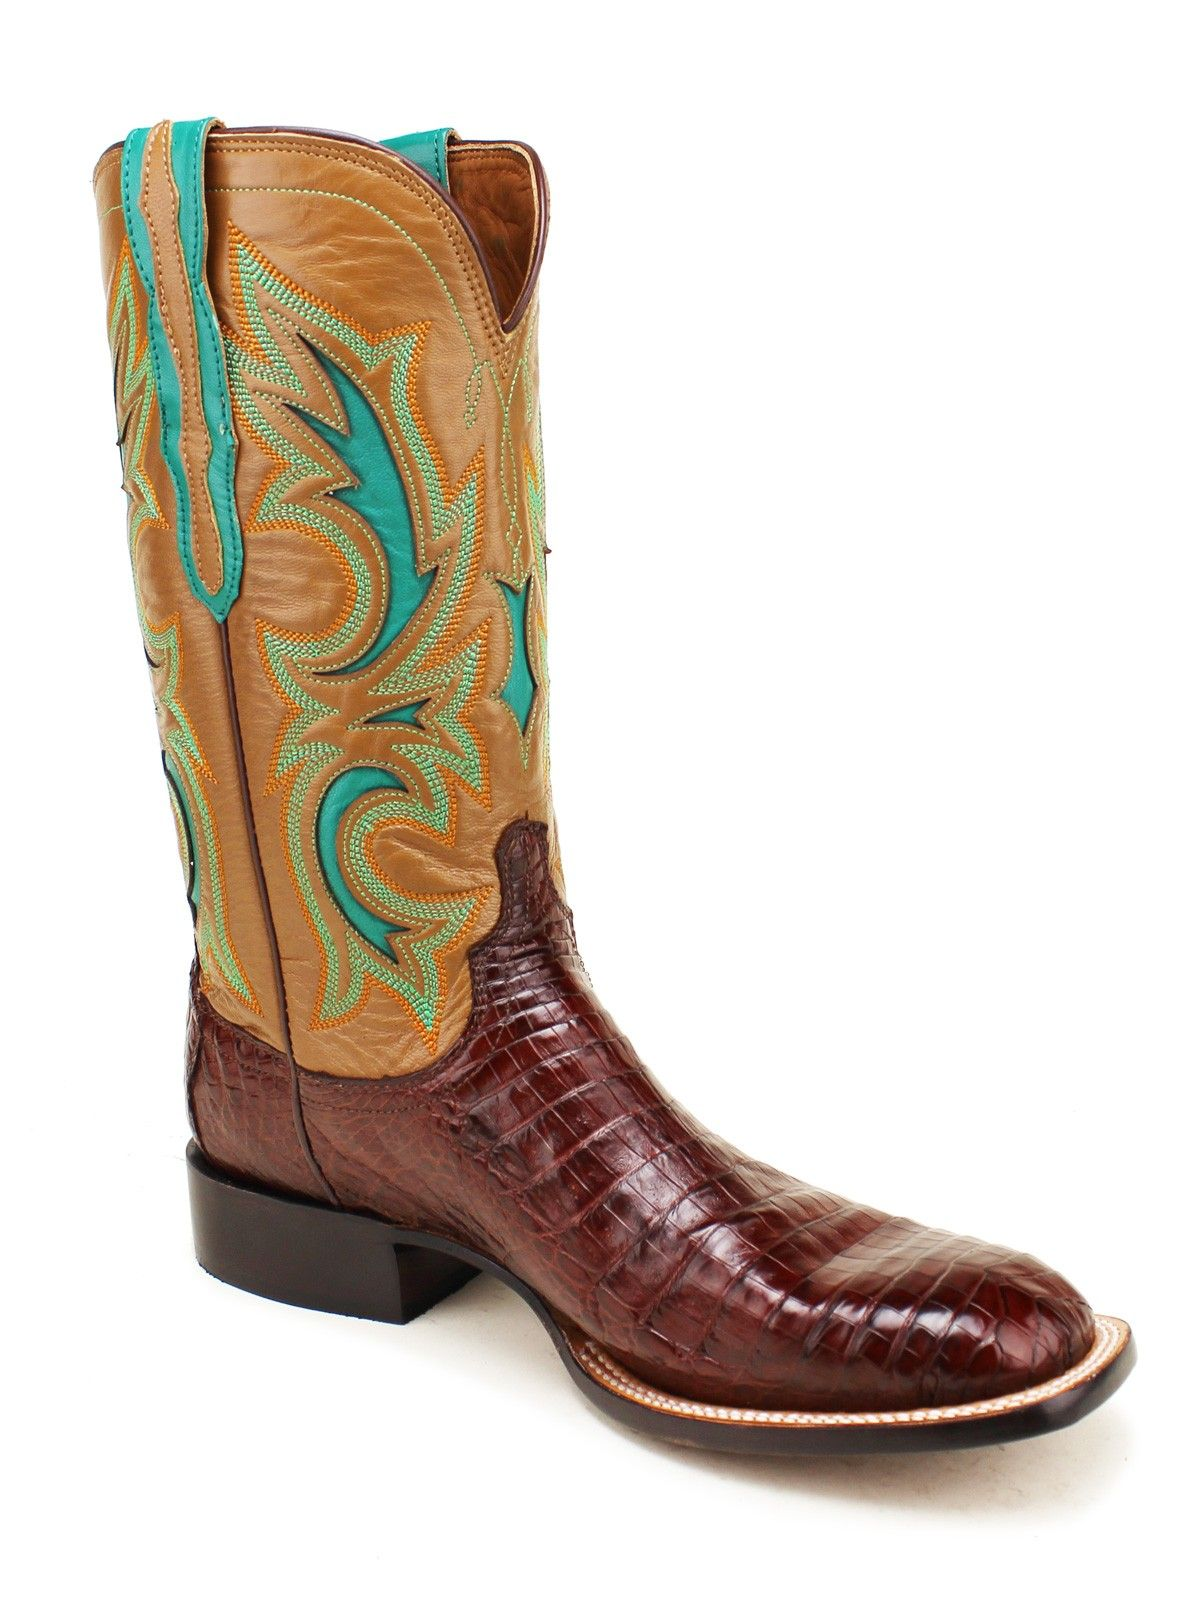 Mens Lucchese Cigar Caiman Belly Boots M2678 - Texas Boot Company is  located in Bastrop,